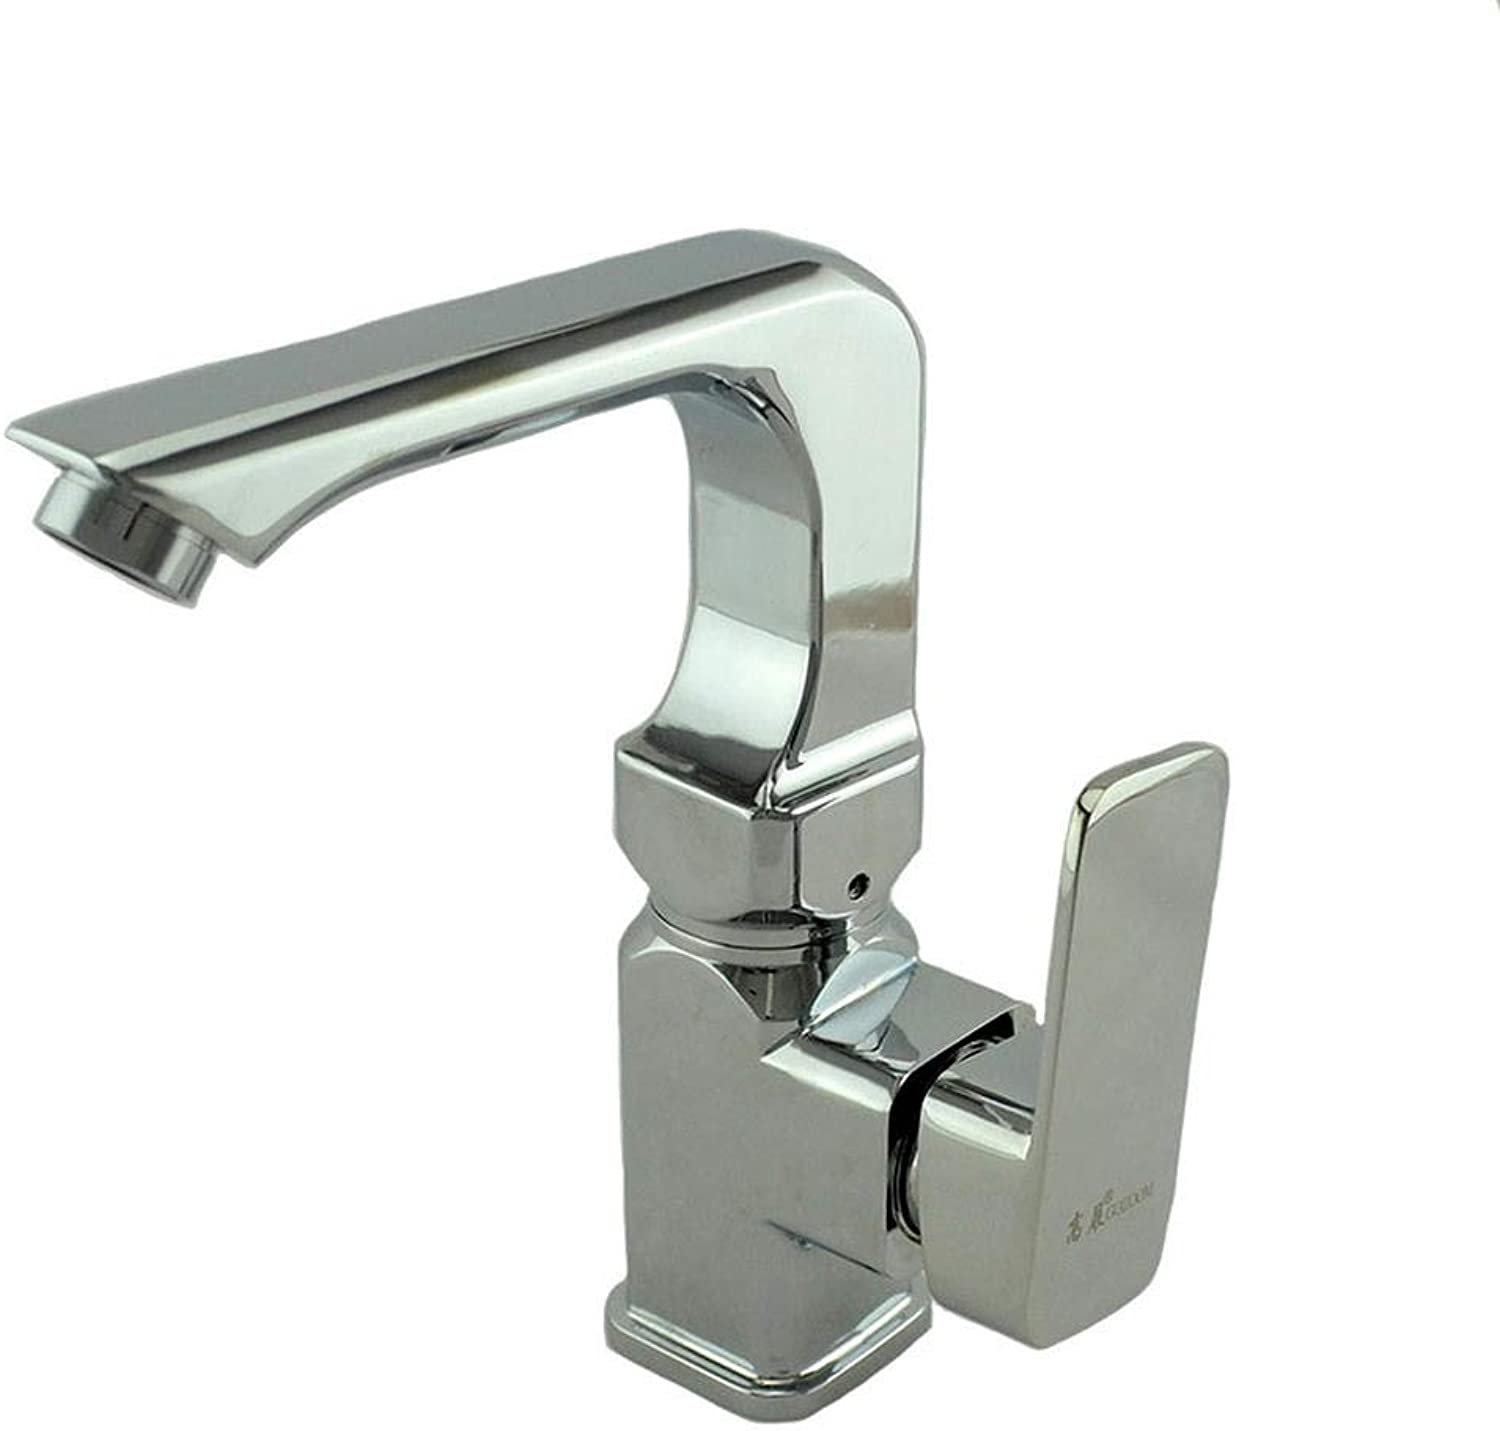 Quartet Single redating Basin Single Hole High Pressure Faucet Hot and Cold Water Faucet Basin